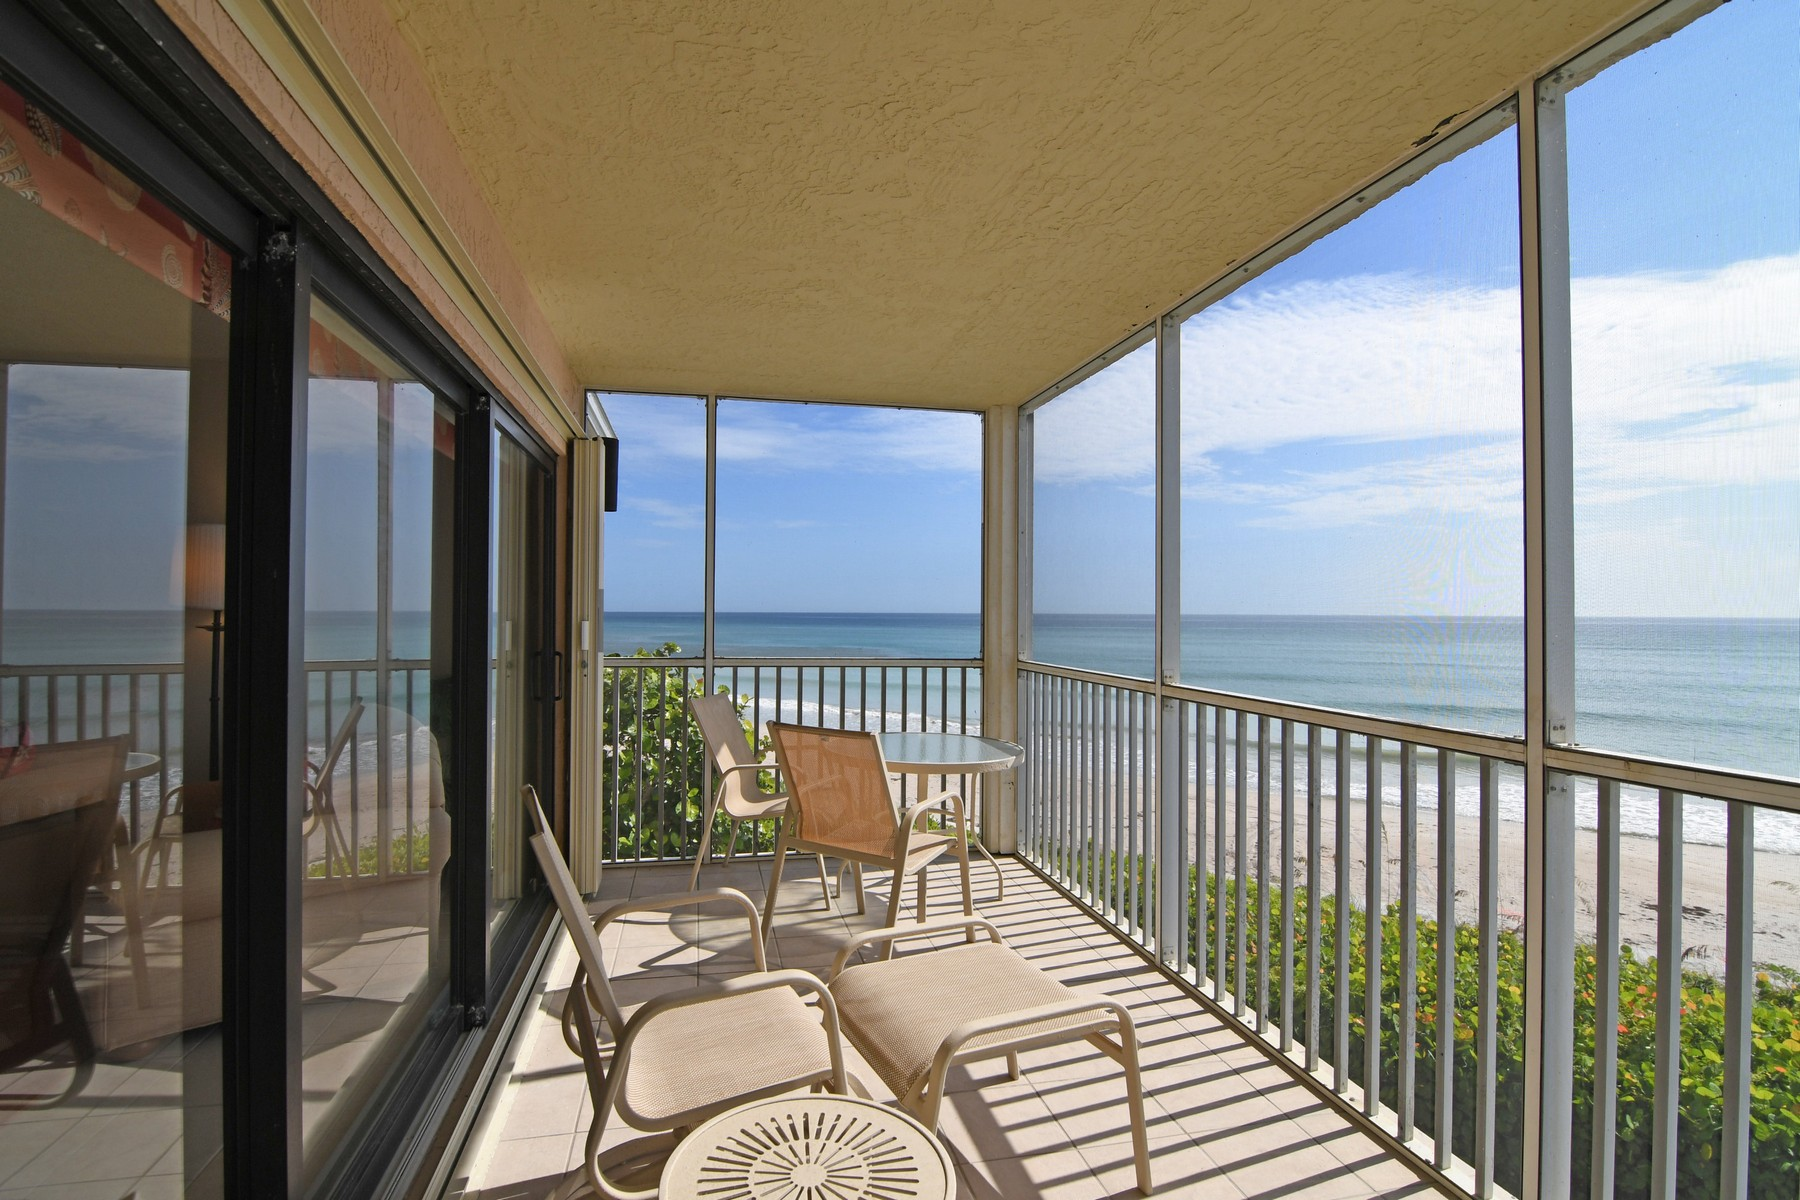 Appartement voor Verkoop een t Sea Oaks Oceanfront Condo 8840 S Sea Oaks Way #206 Vero Beach, Florida 32963 Verenigde Staten